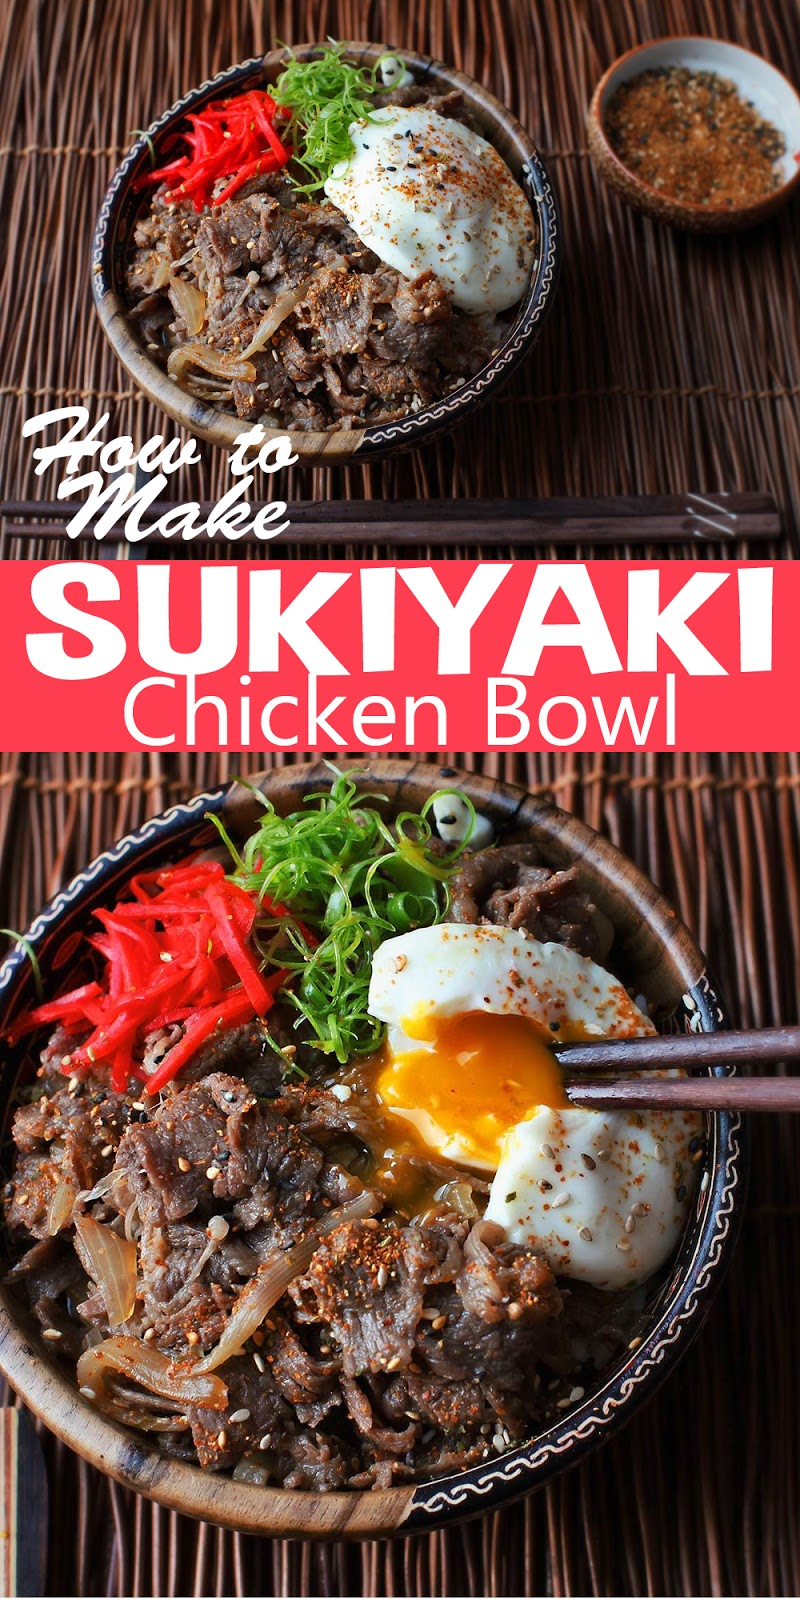 SUKIYAKI CHICKEN BOWL